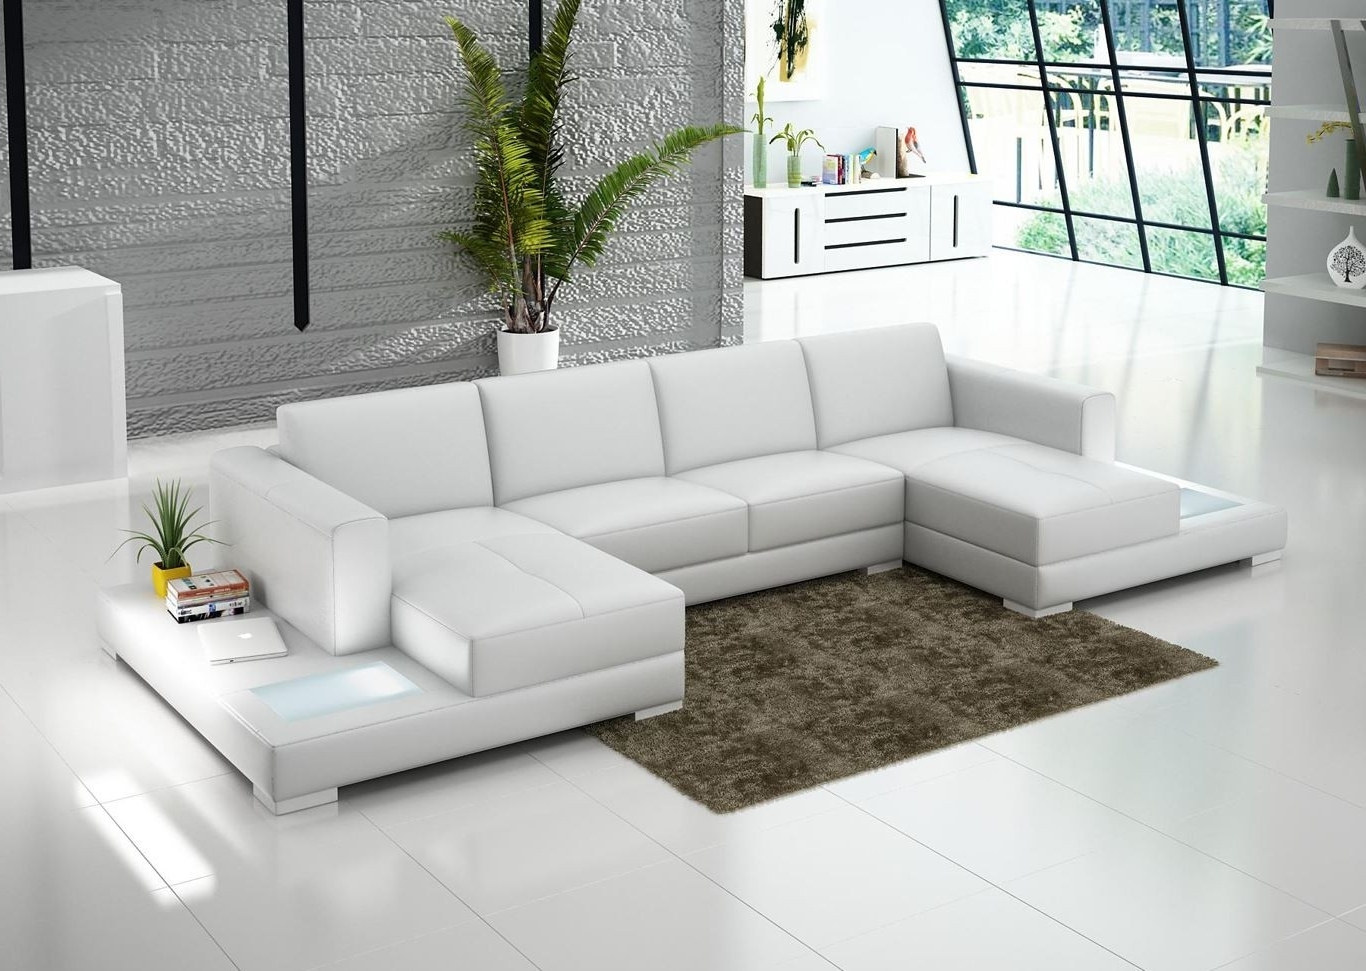 Popular Double Chaise Sectional For Complete And Perfect Welcoming Living For Double Chaise Sofas (View 7 of 15)